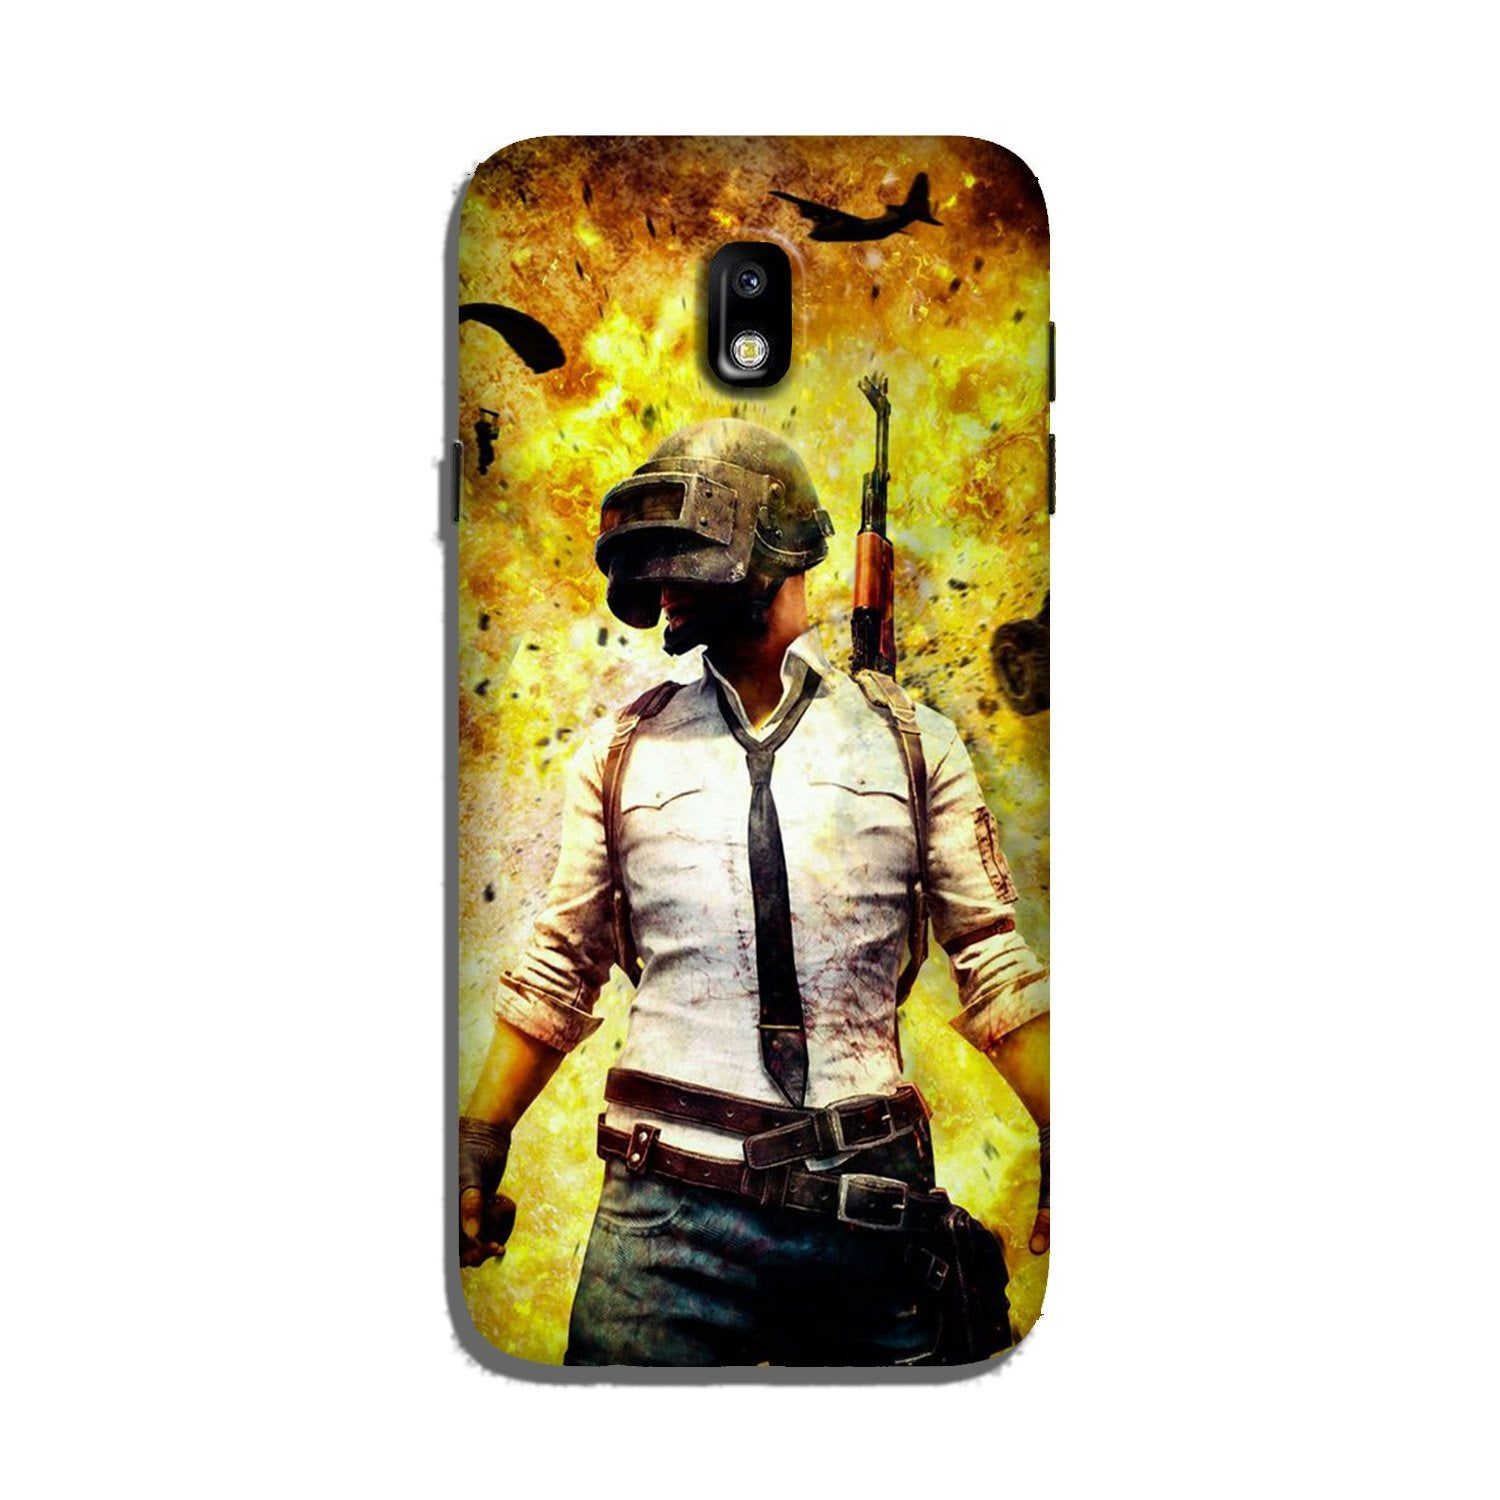 Pubg Case for Galaxy J3 Pro  (Design - 180)